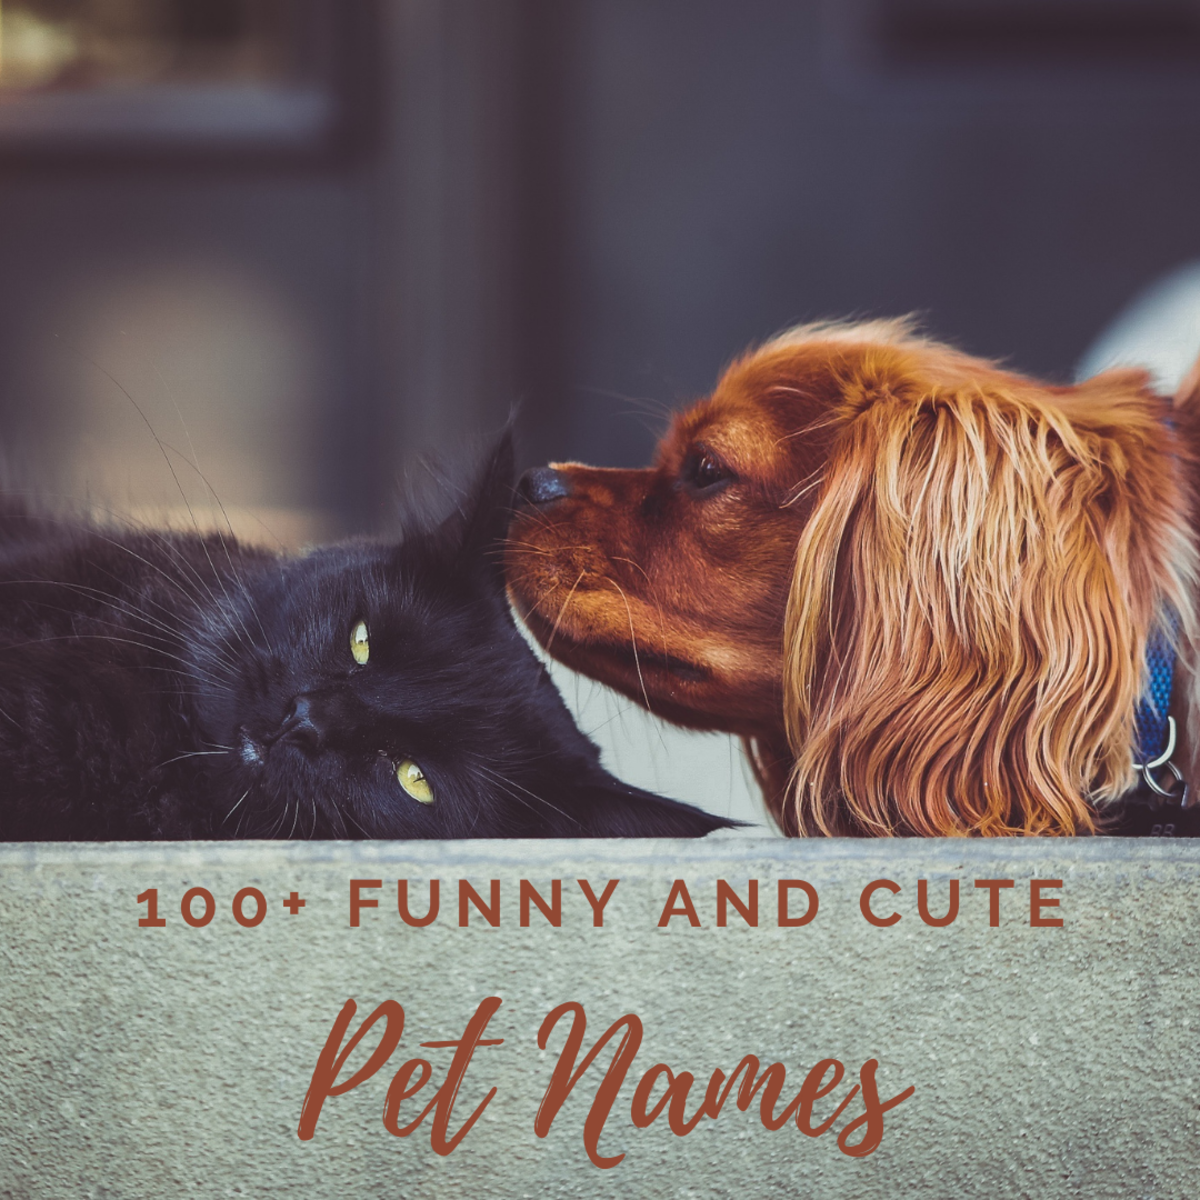 100+ creative, funny, and adorable pet names